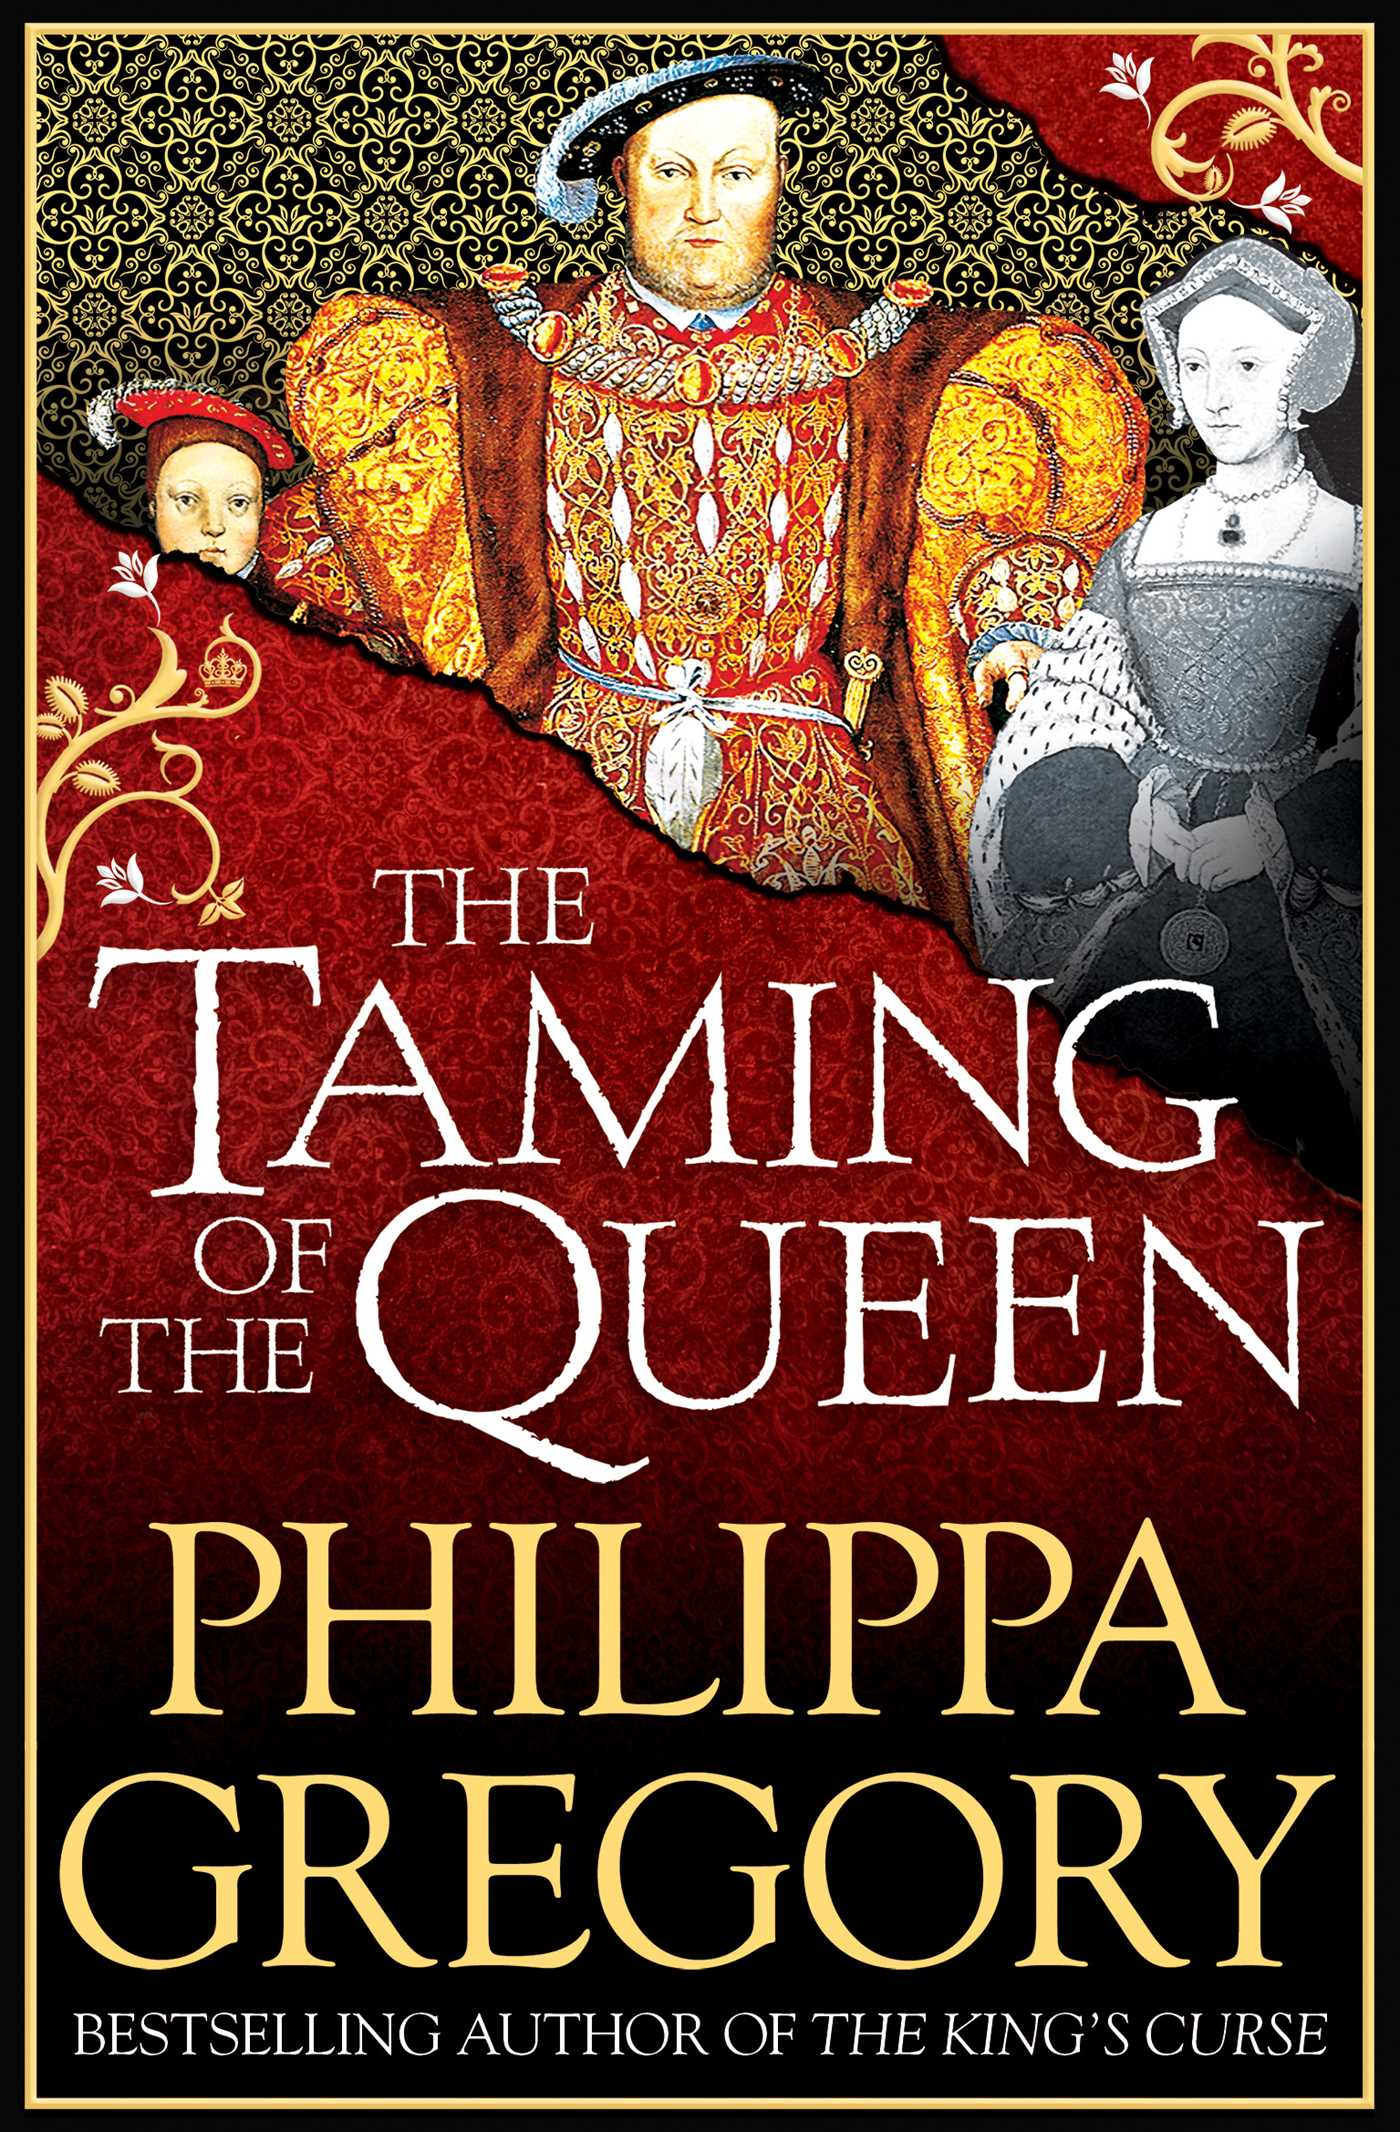 TAMING OF THE QUEEN, THE